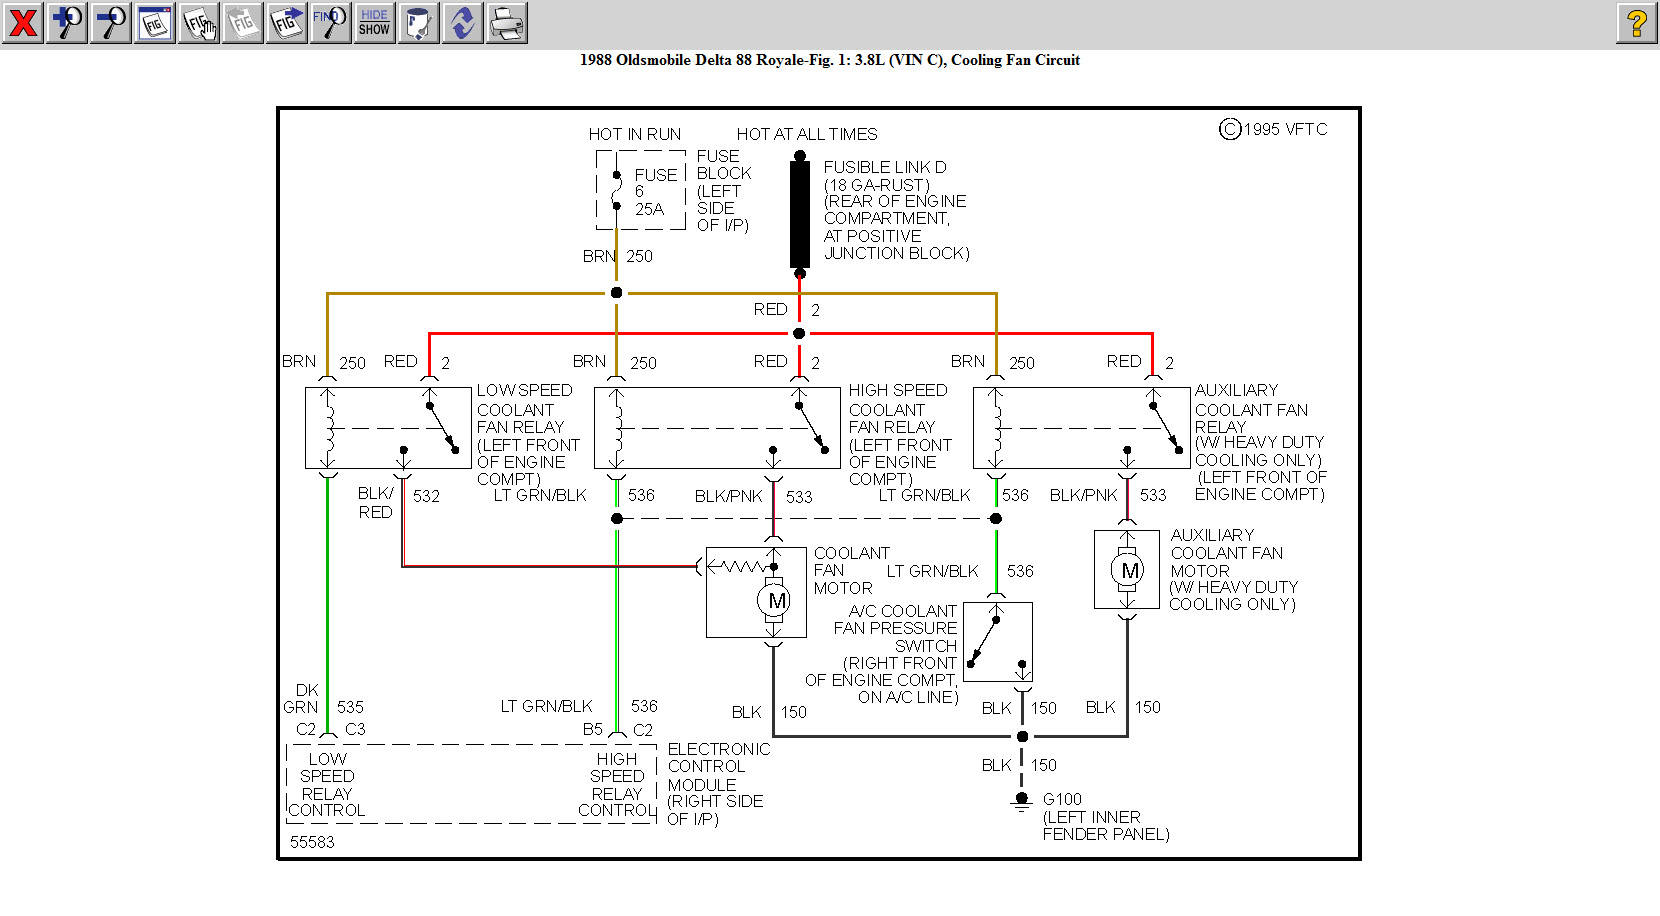 hight resolution of 1984 oldsmobile delta 88 ac wiring diagram 42 wiring oldsmobile alero wiring diagram oldsmobile silhouette wiring diagram